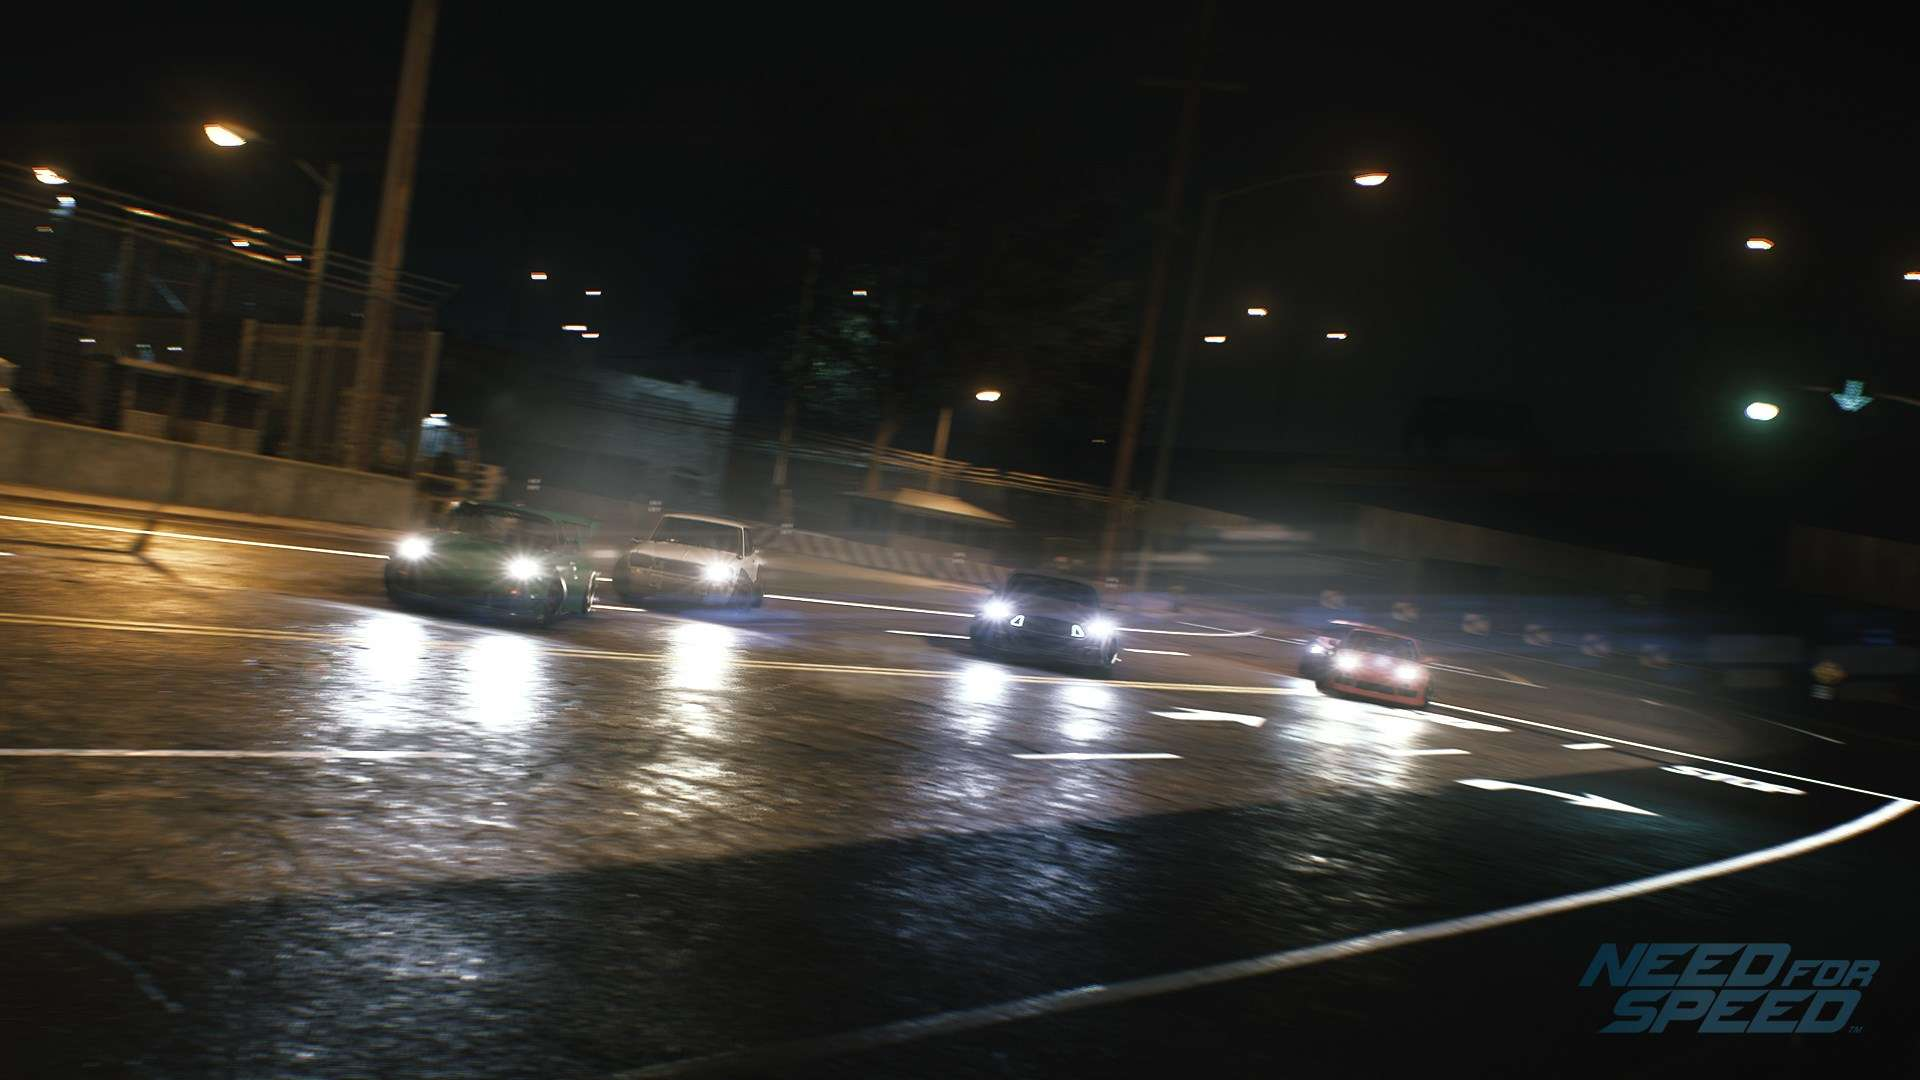 Need for Speed: stasera si va a correre! 7